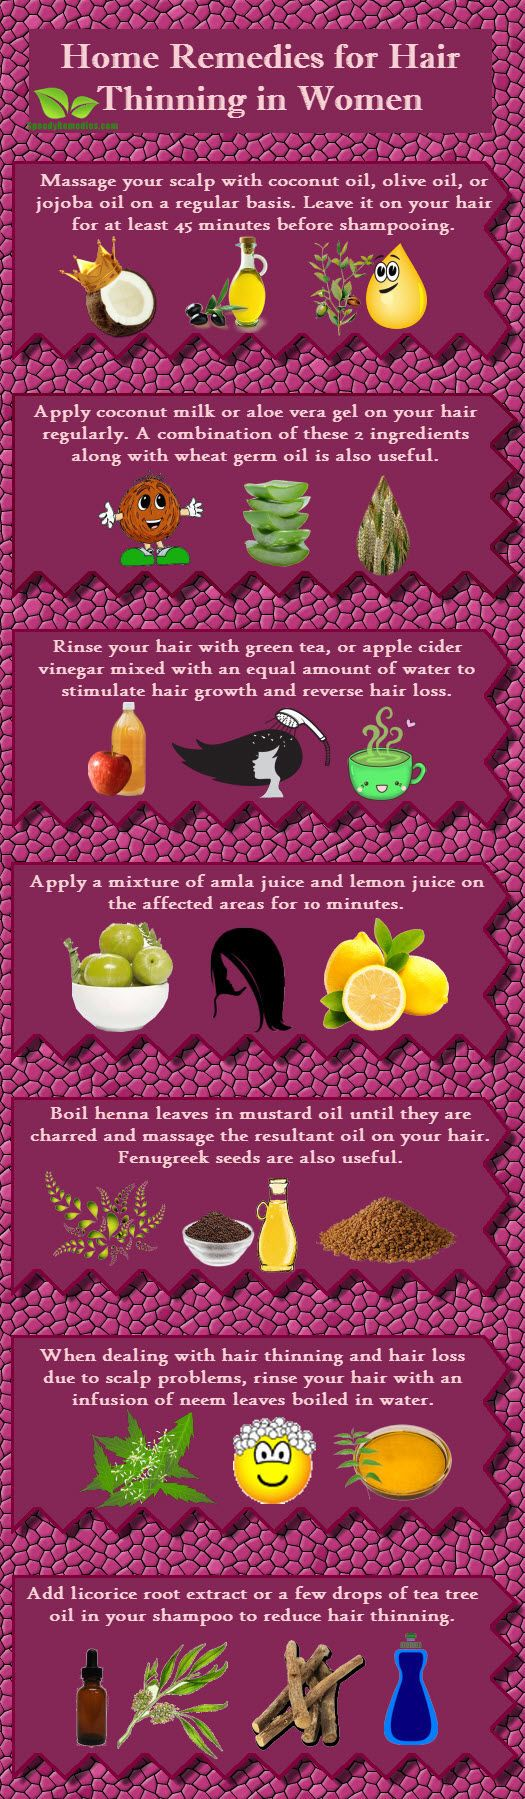 Home remedies for Hair thinning in Women